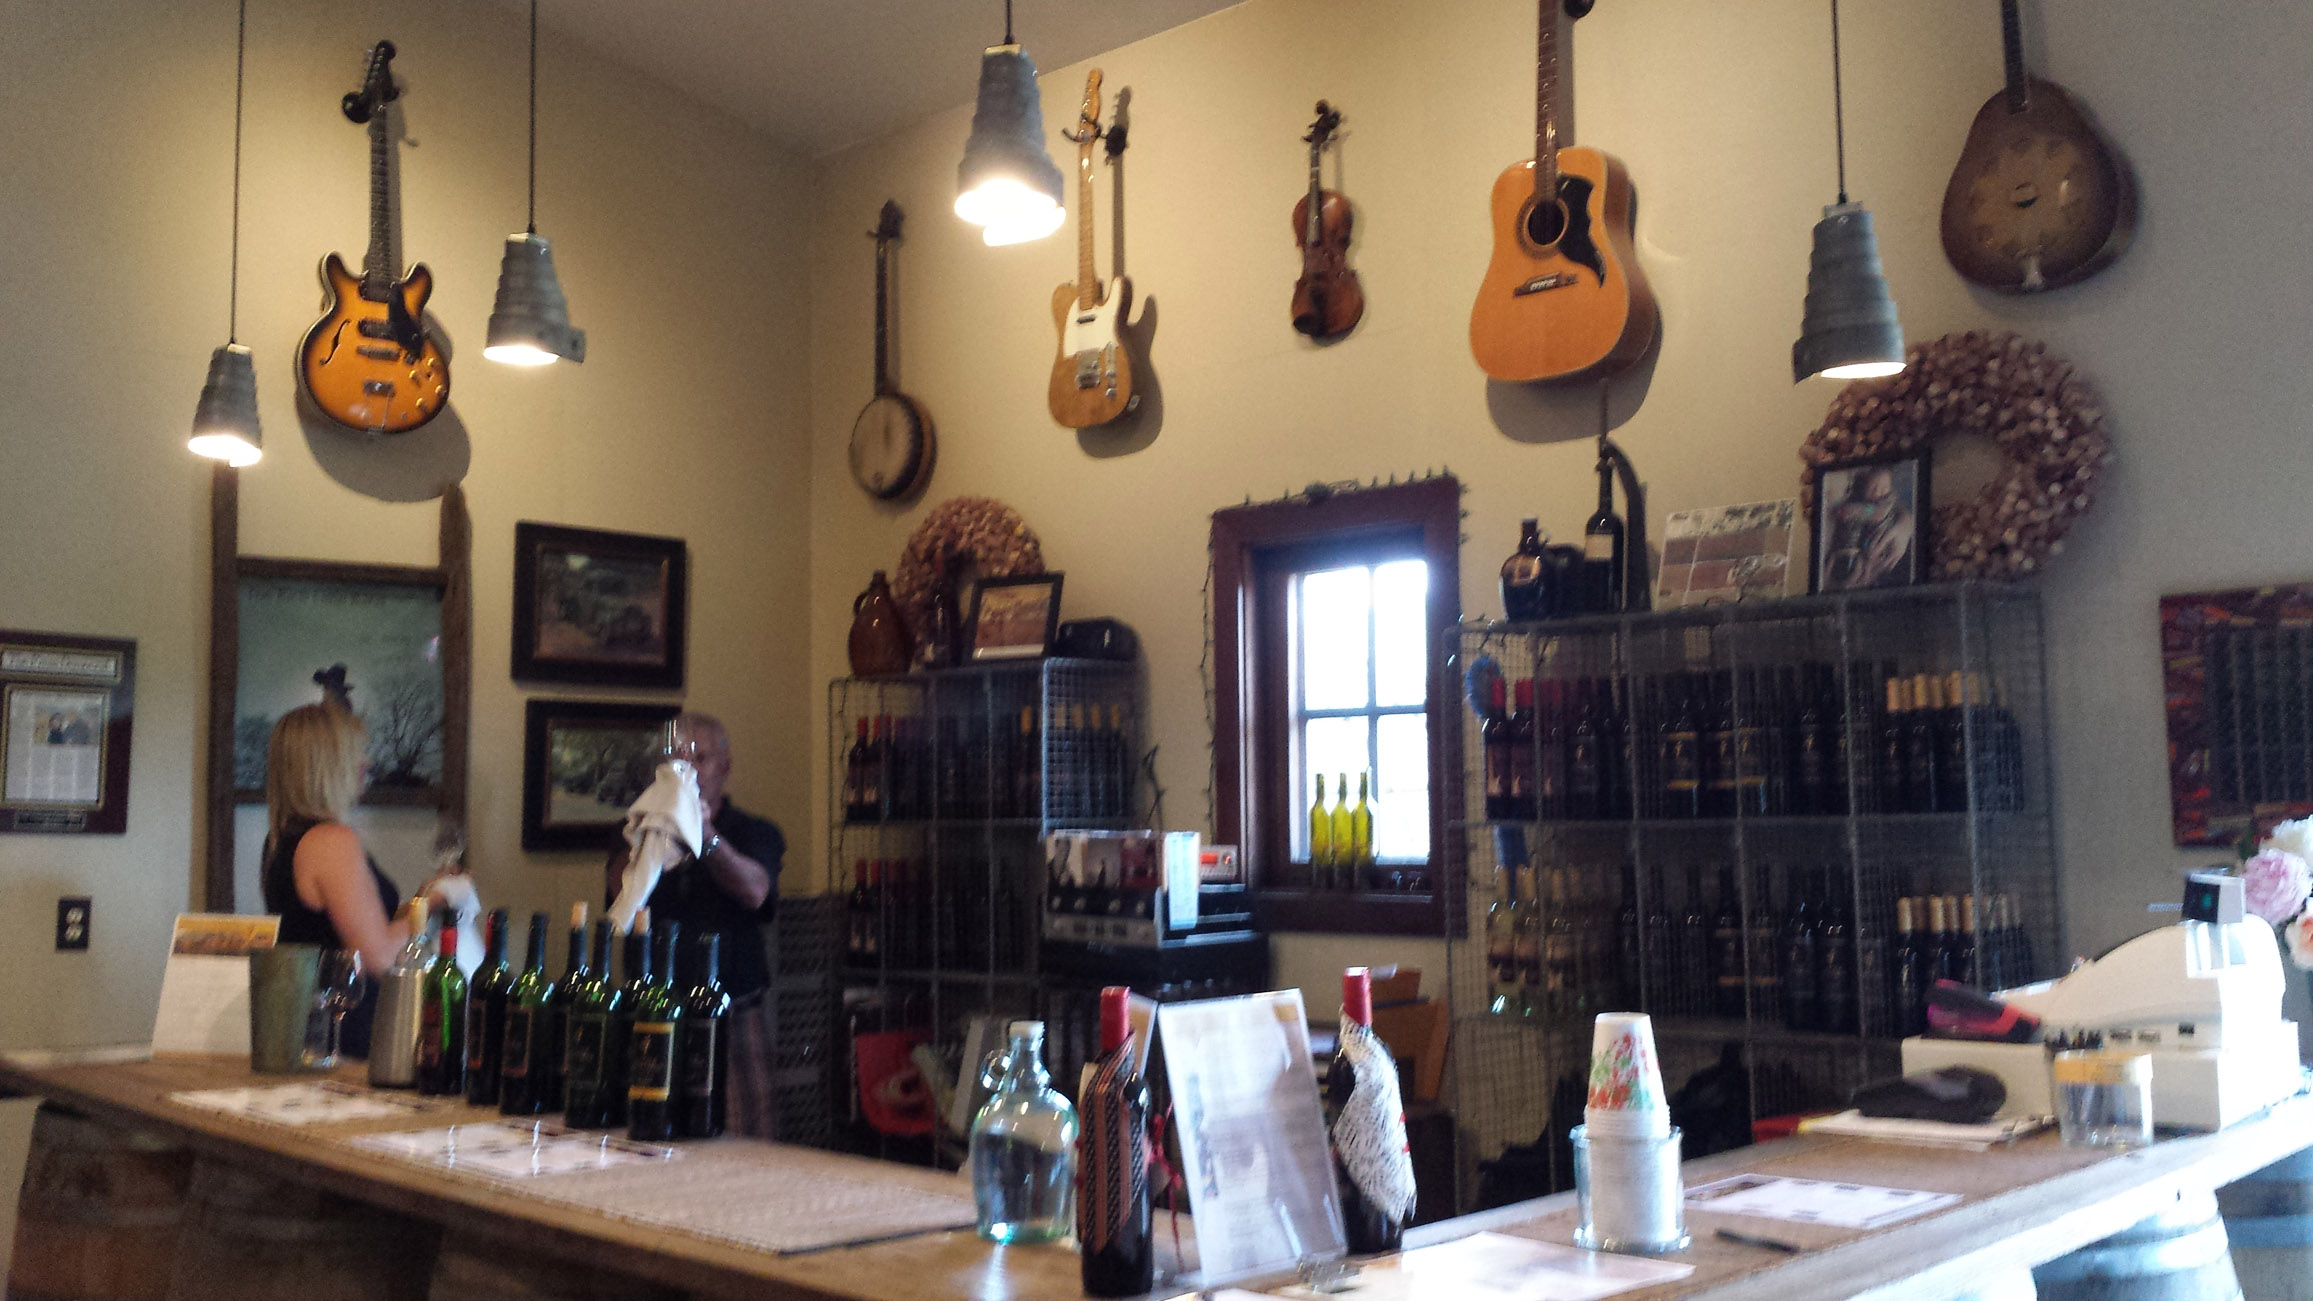 Inside the Tasting Room at Little Vineyards